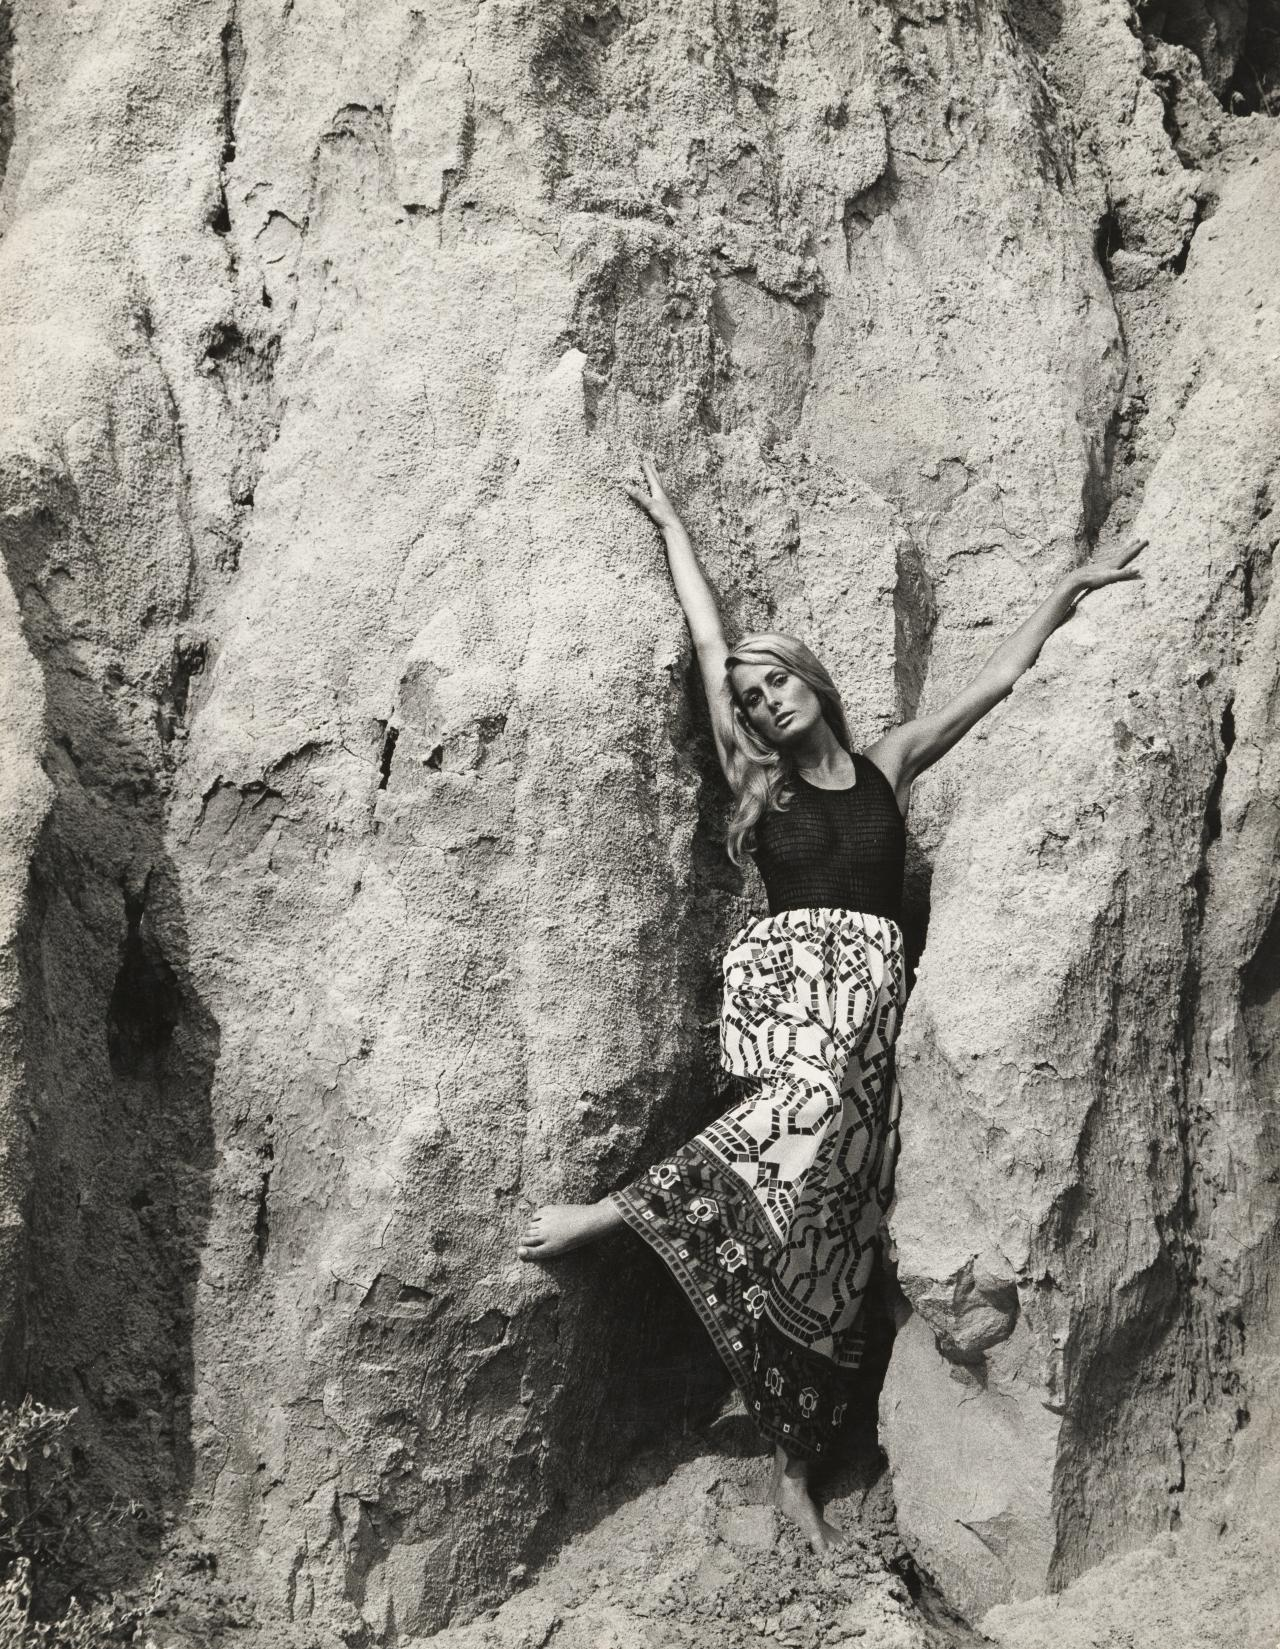 No title (Fashion illustration. Model in long printed skirt against cliff)